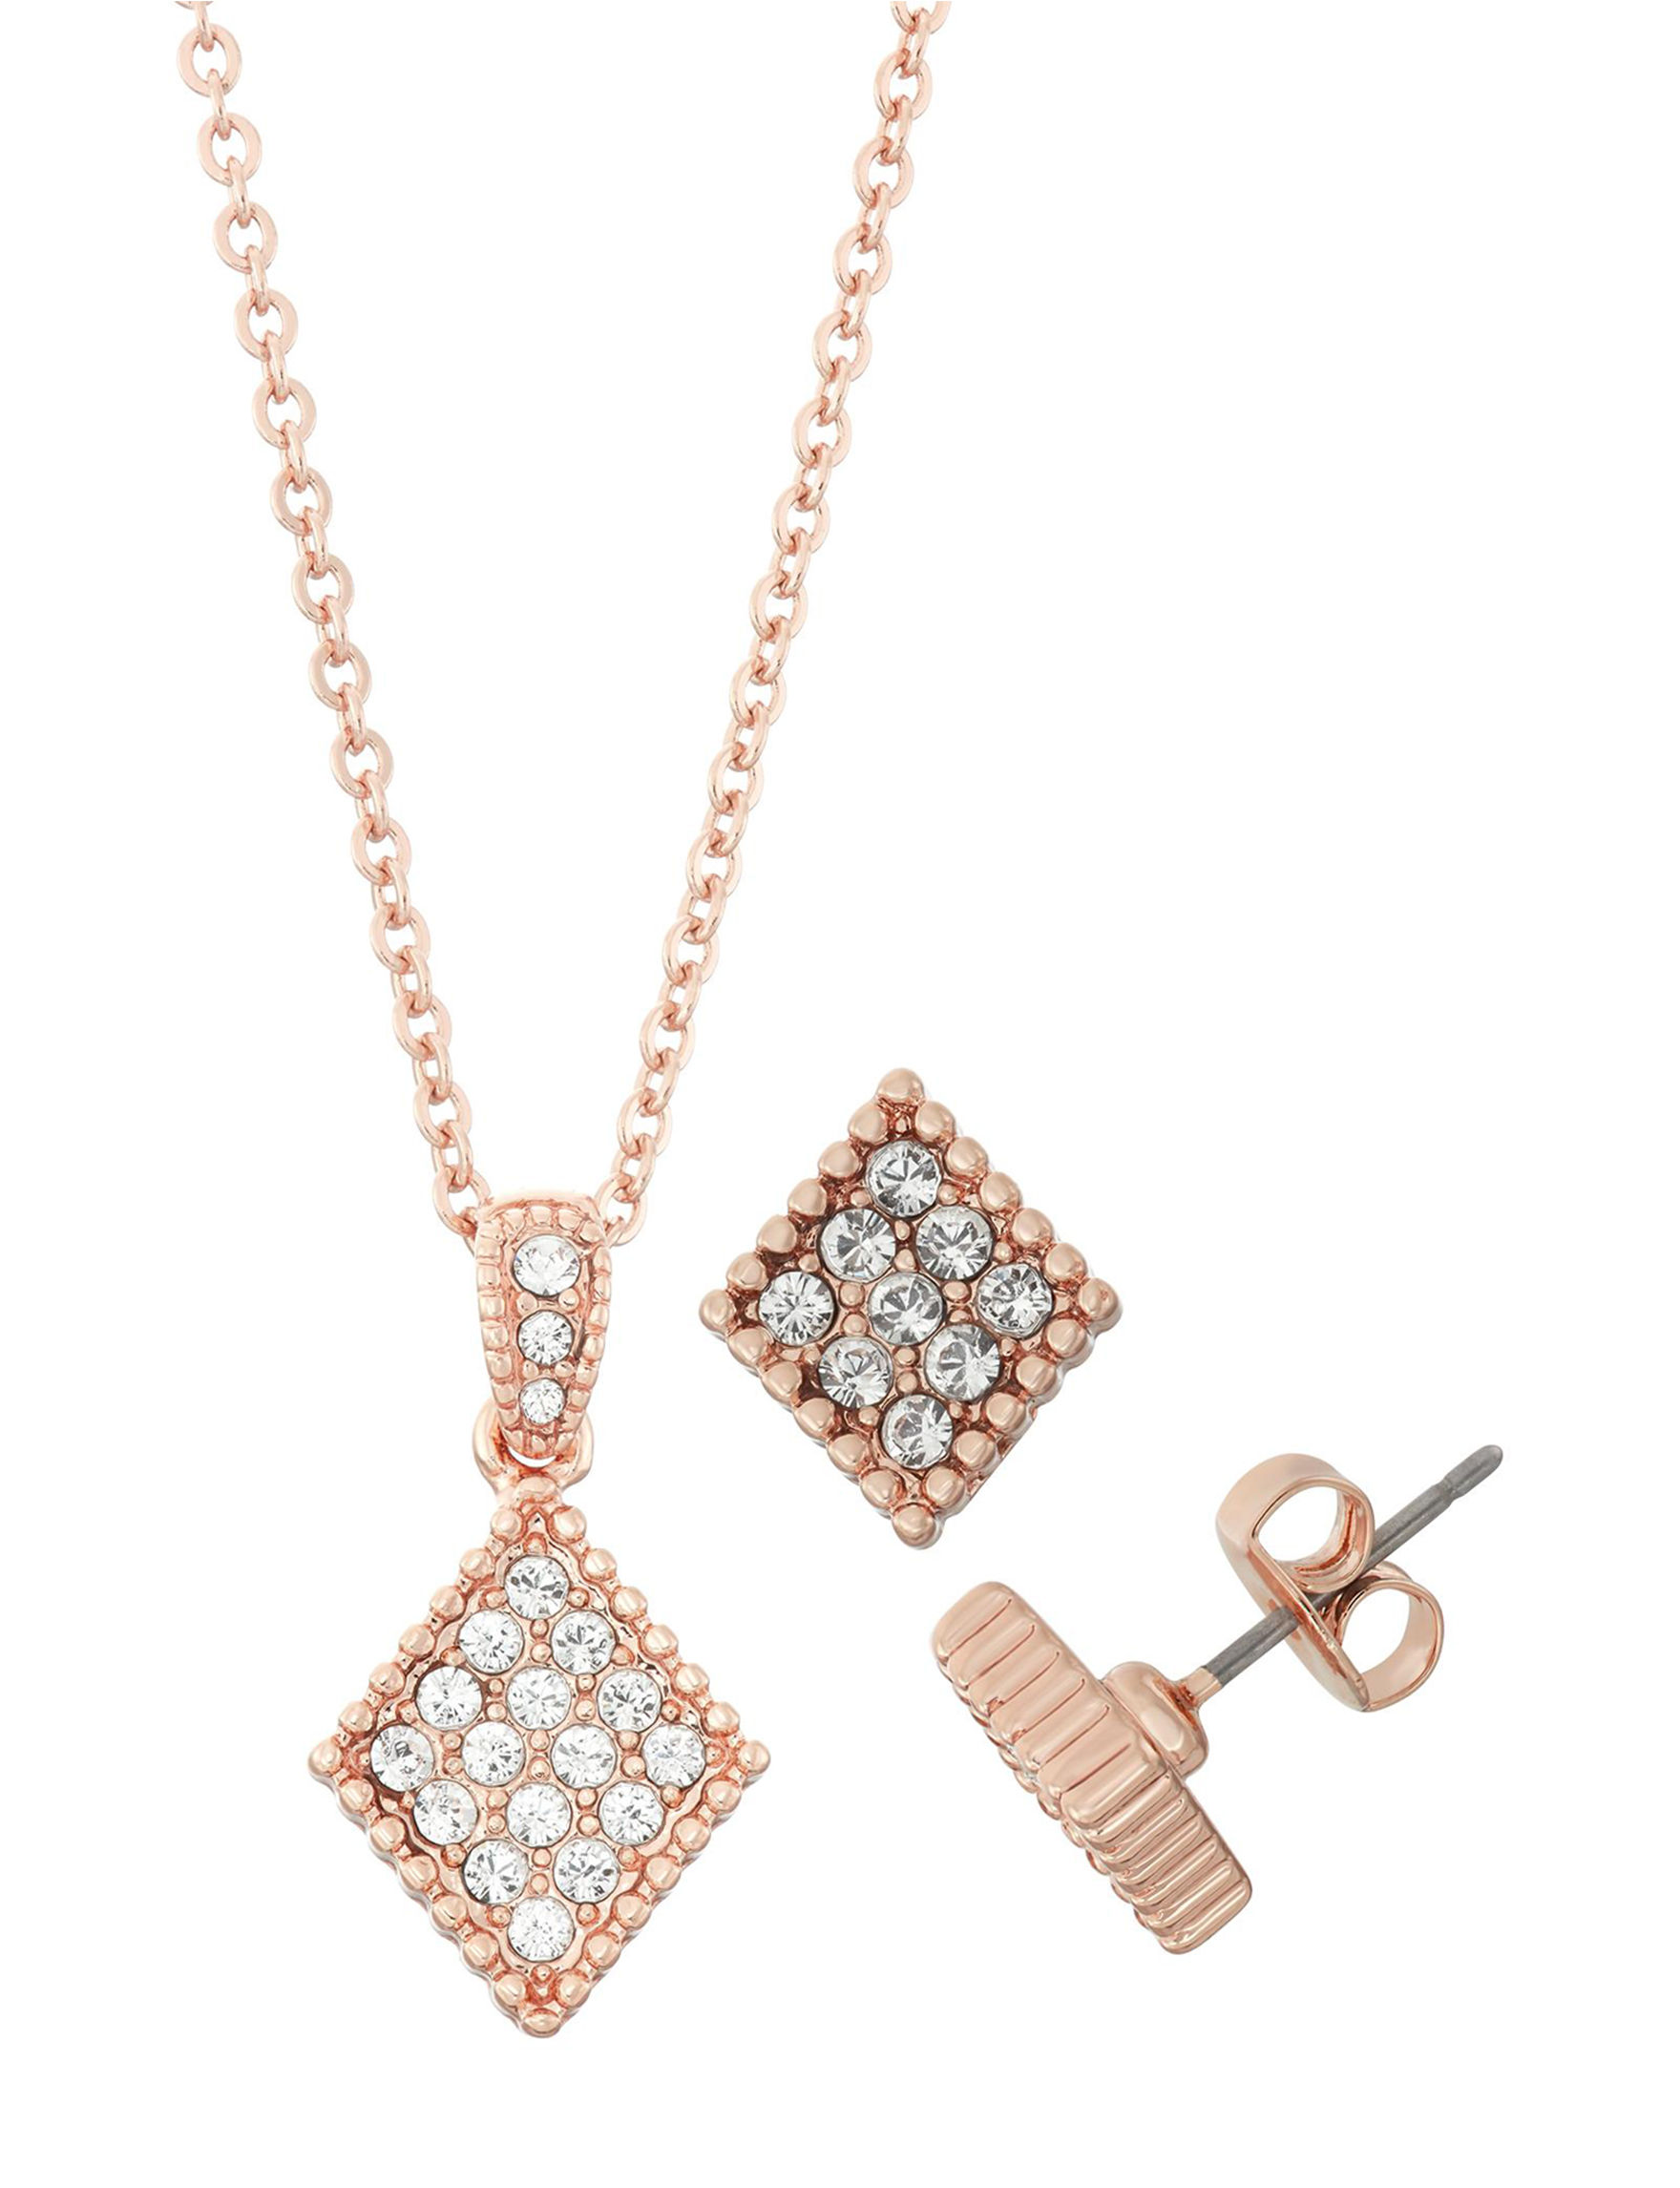 Crystal Colors Rose Gold Jewelry Sets Fine Jewelry